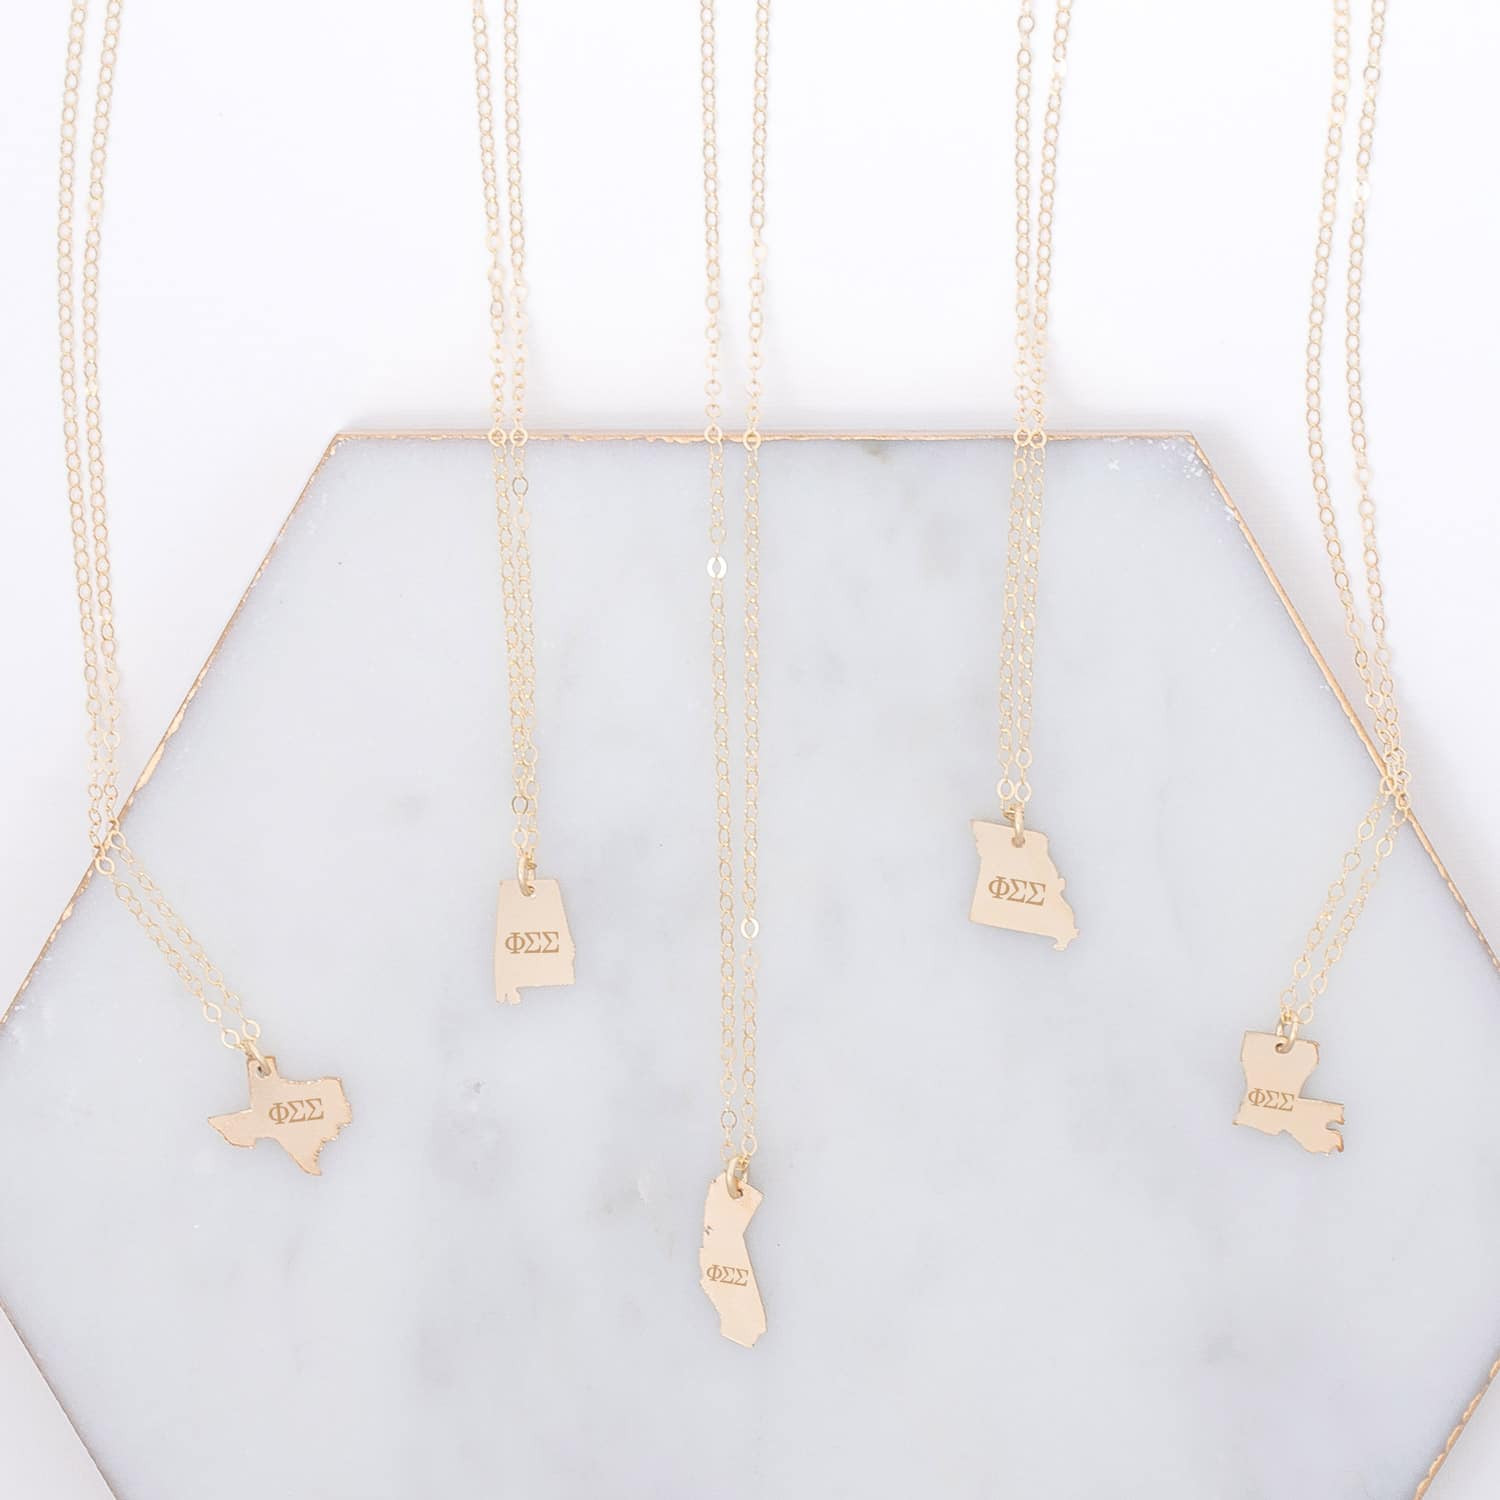 phi-sigma-sigma-state-necklace-gold-compilation-on-marble